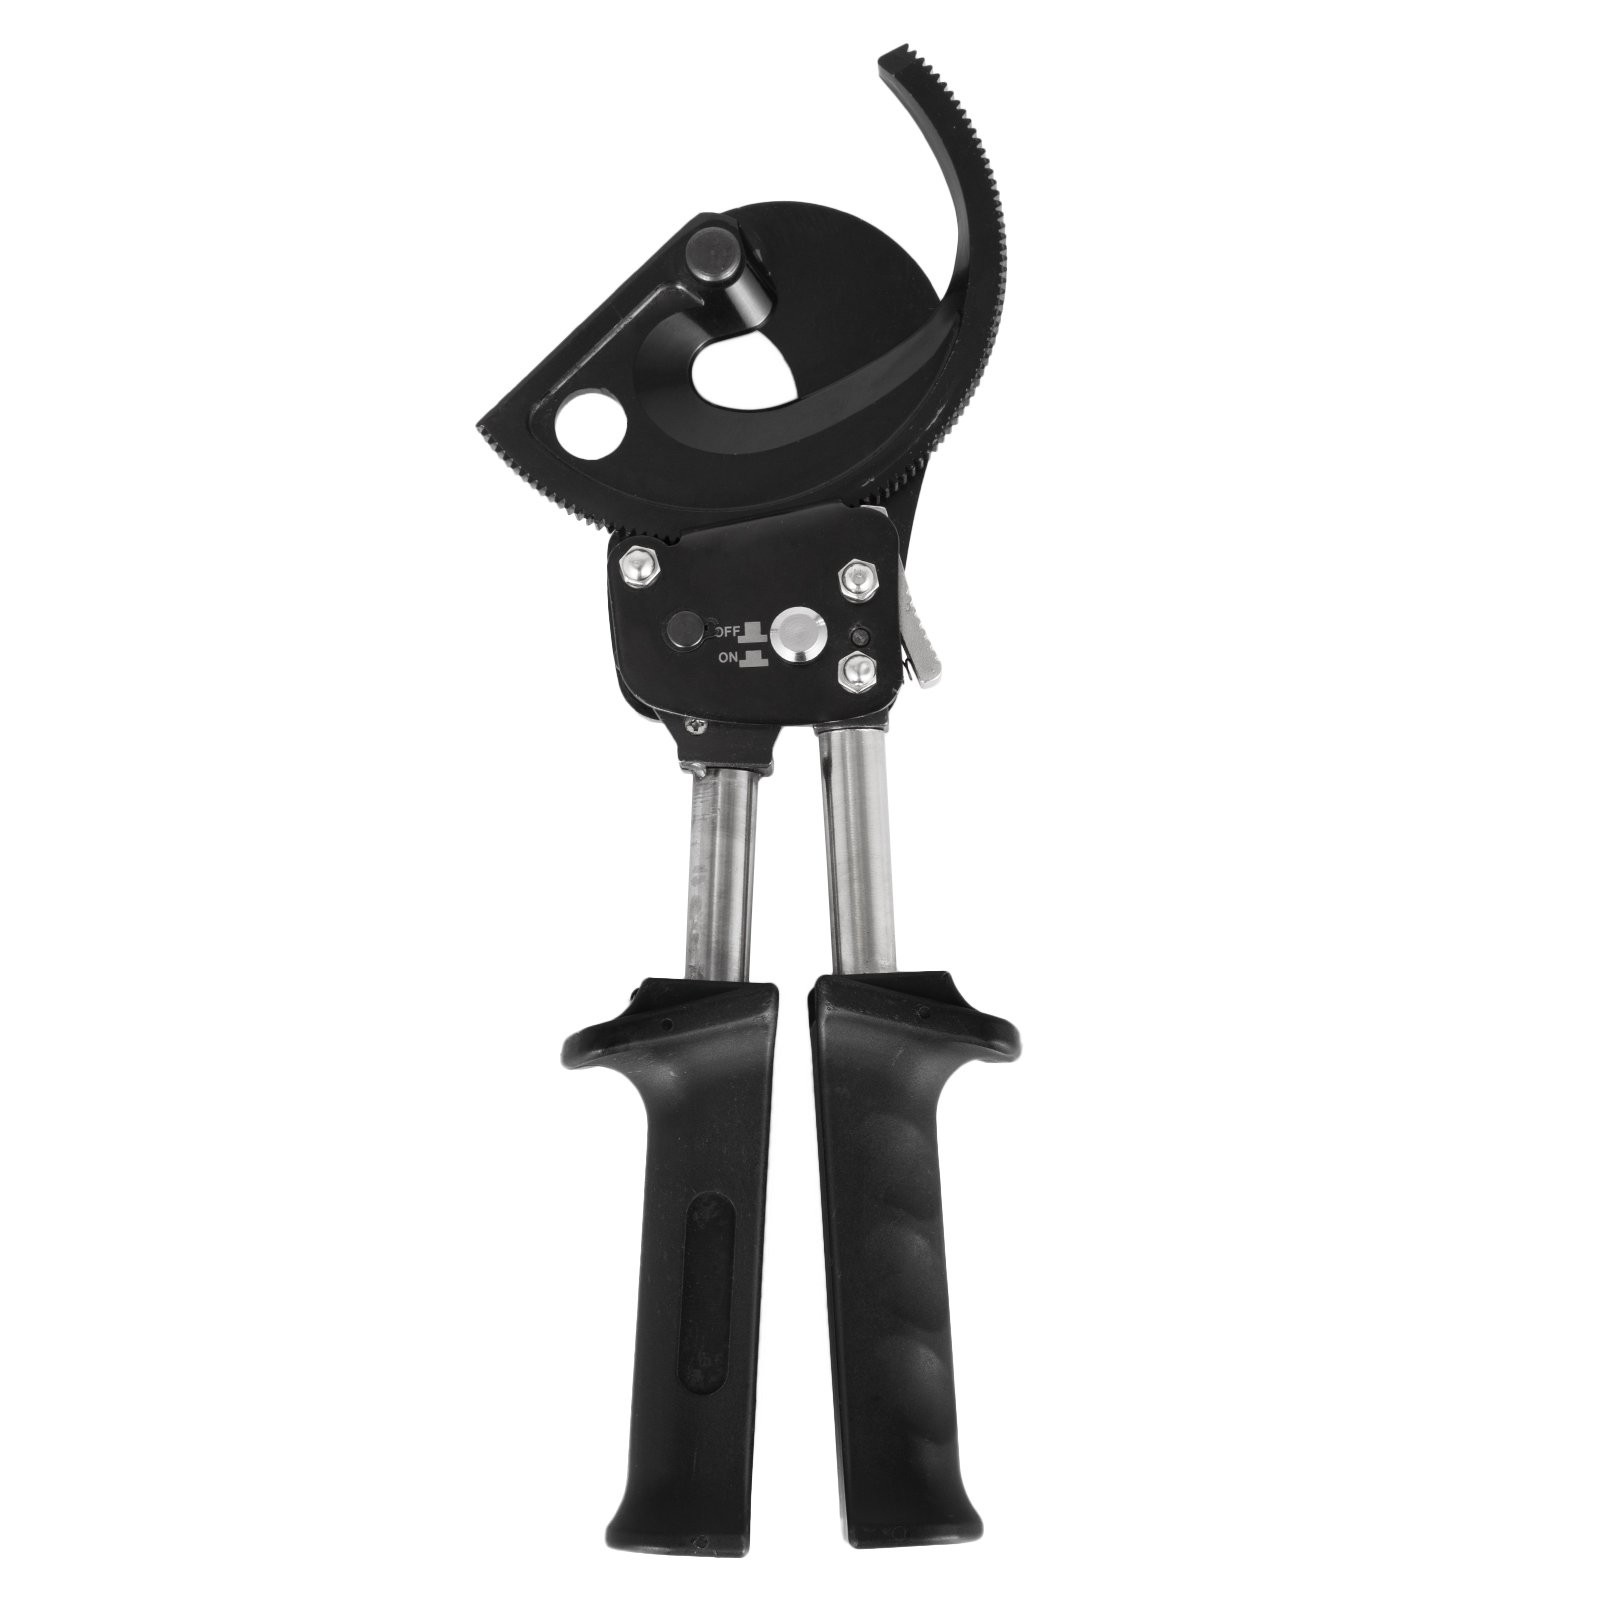 DeEtt Cable Cutter 400mm2 Wire Cutter Ratchet Cable Cutter Mechanical High Carbon Steel For Cutting Copper And Aluminum Cable